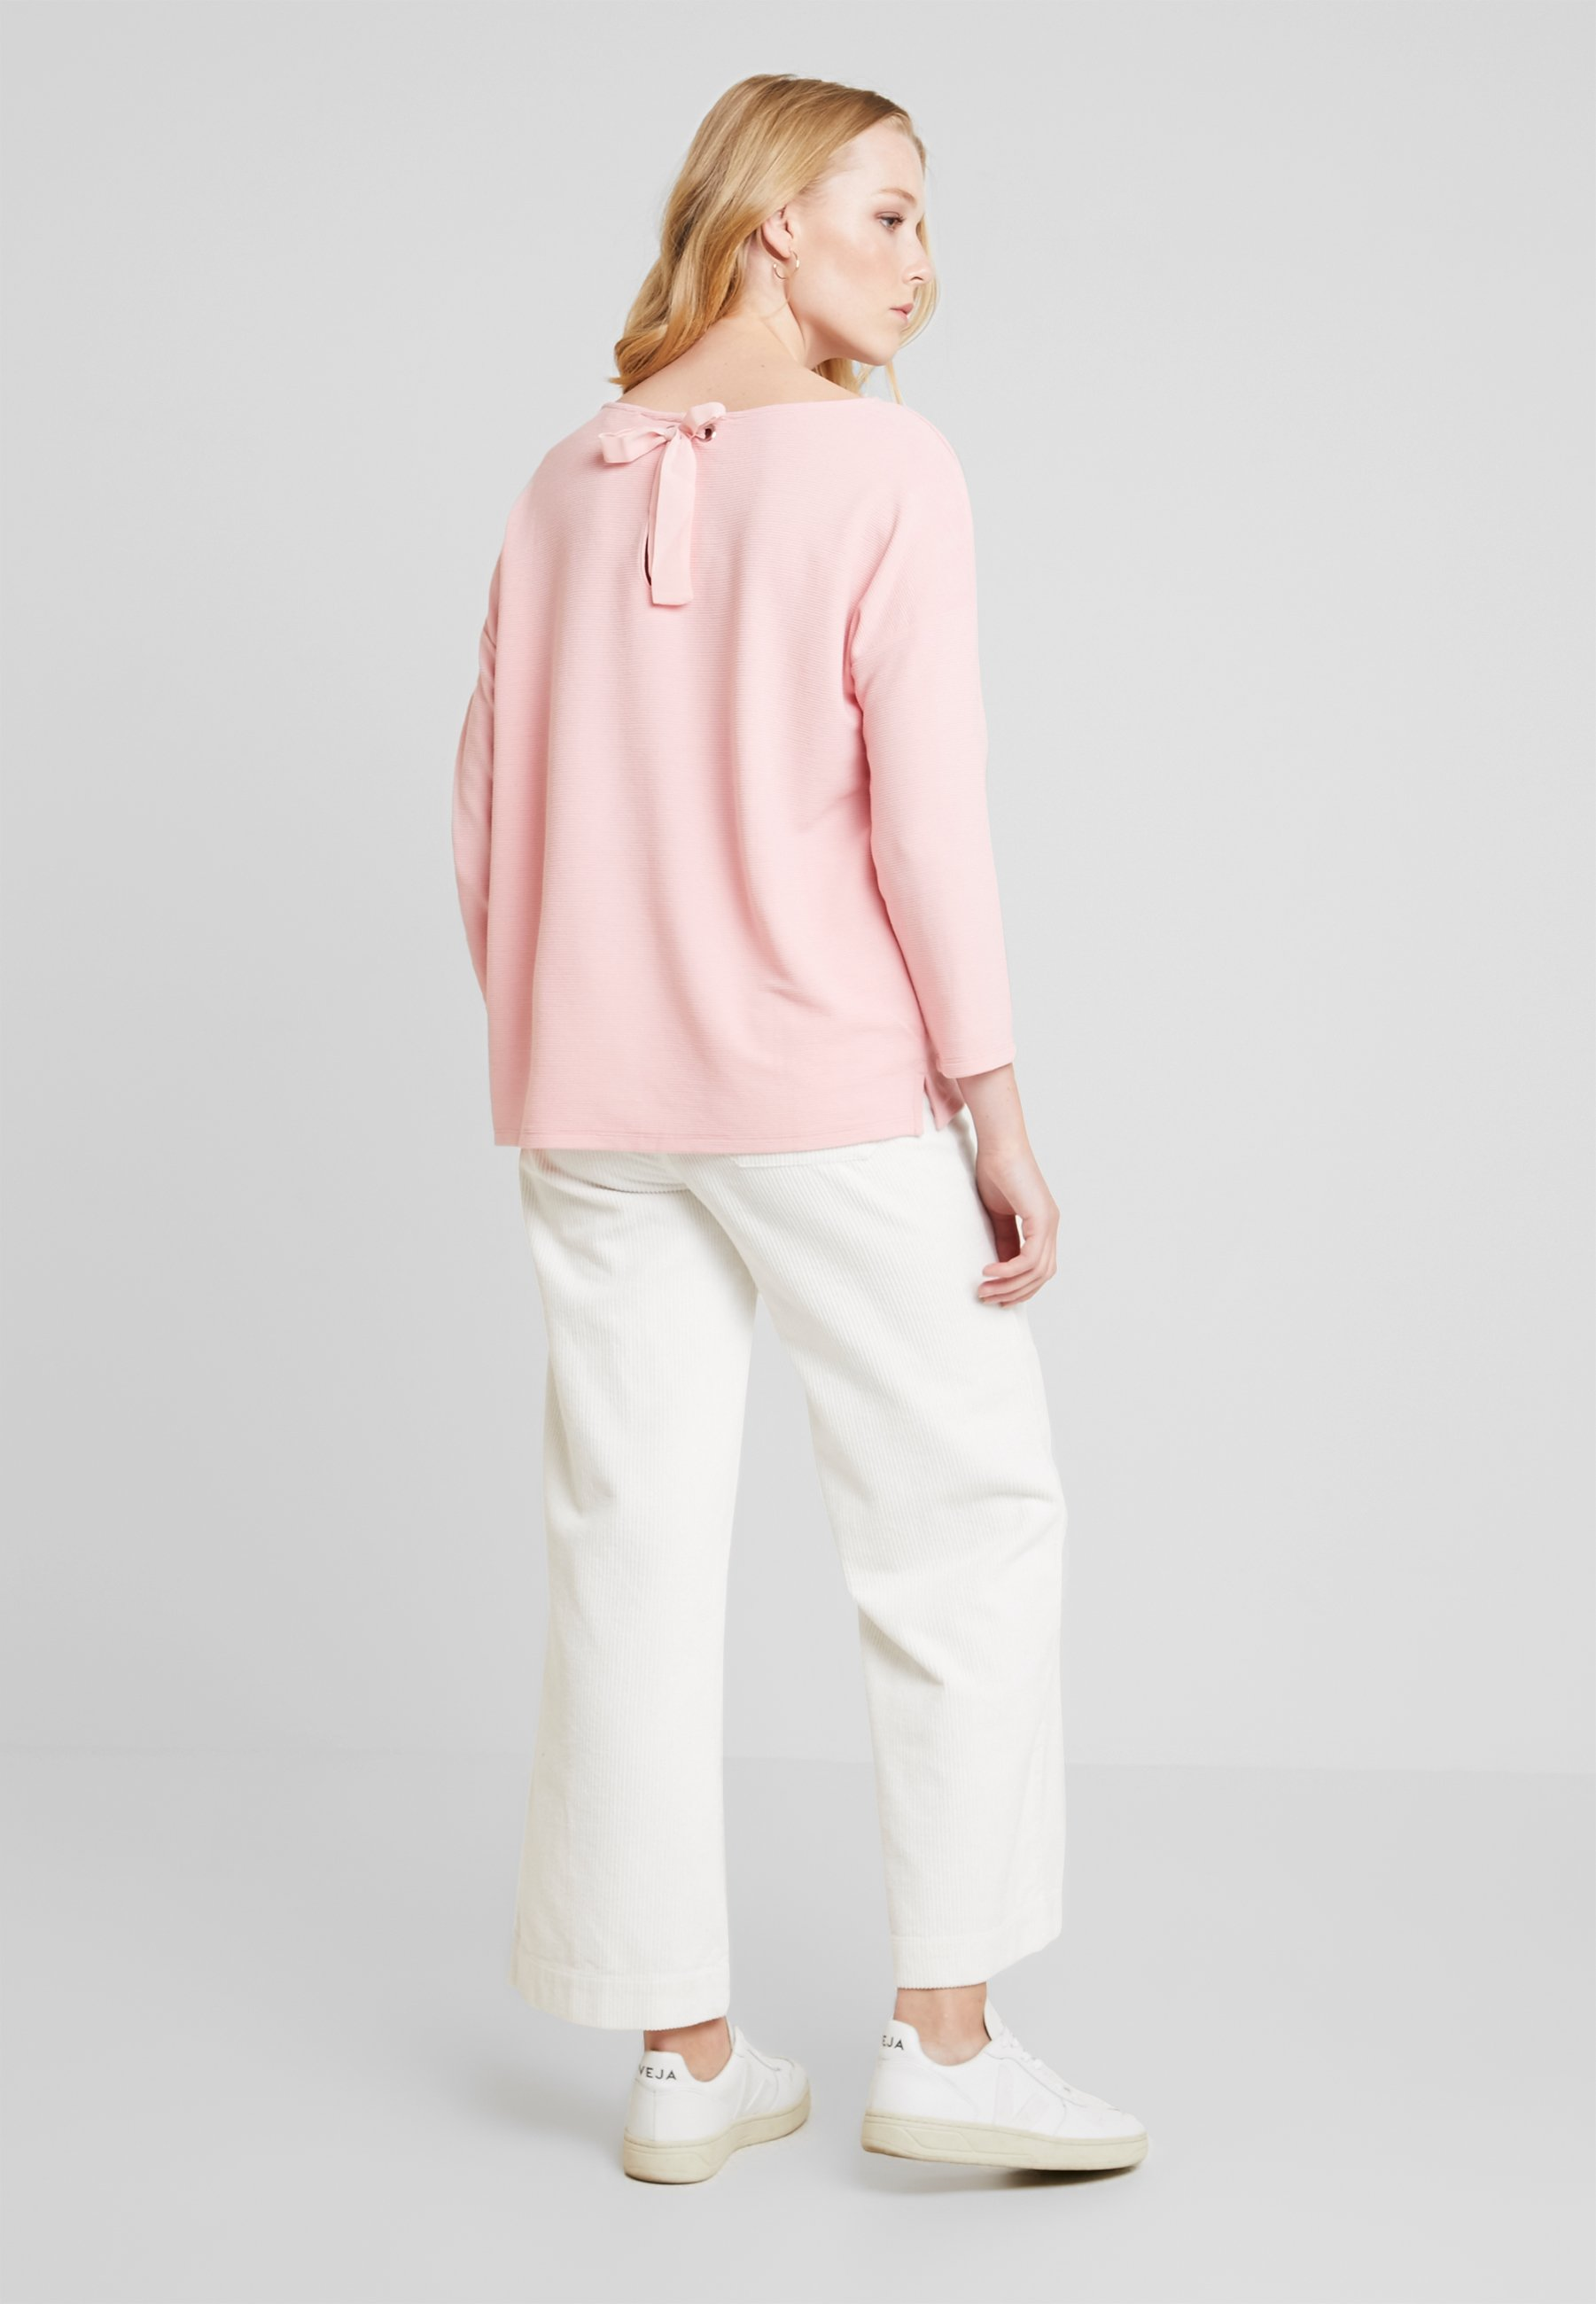 Bow Flower With At Tailor BackT shirt Tom Denim Pink Dusky Manches À Longues Longsleeve 5qLAR34j